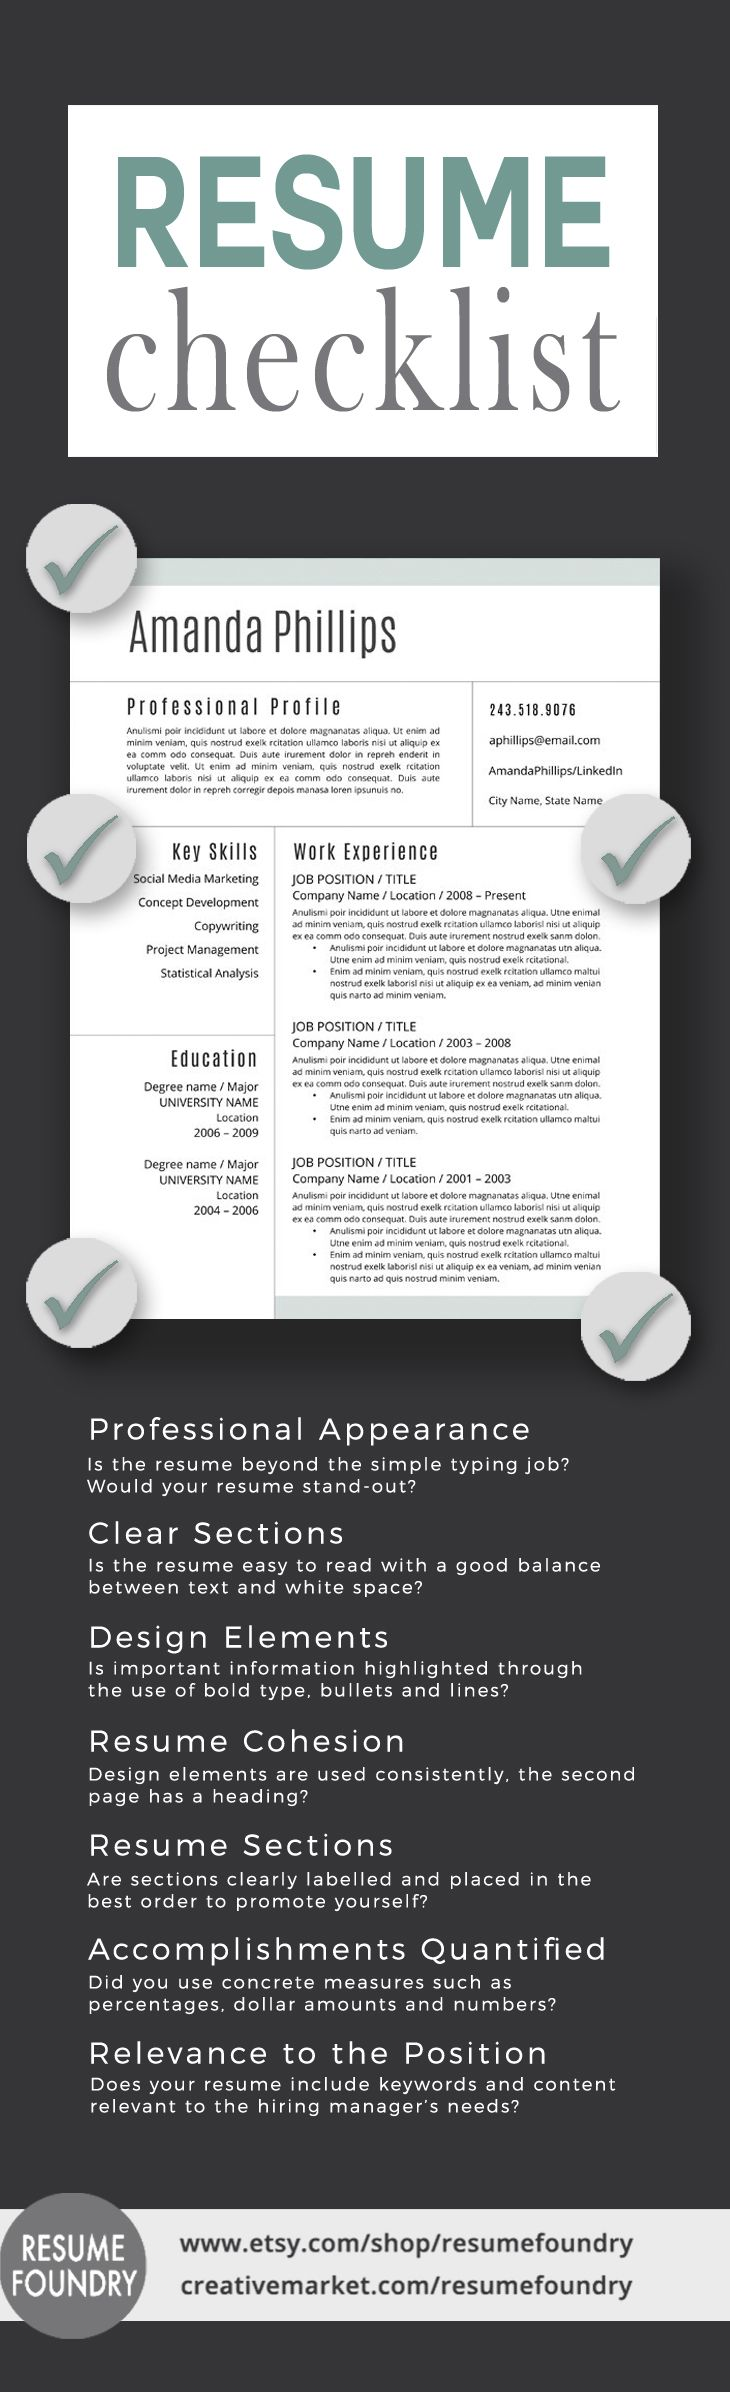 how to present your resume%0A Read this before sending out your resume